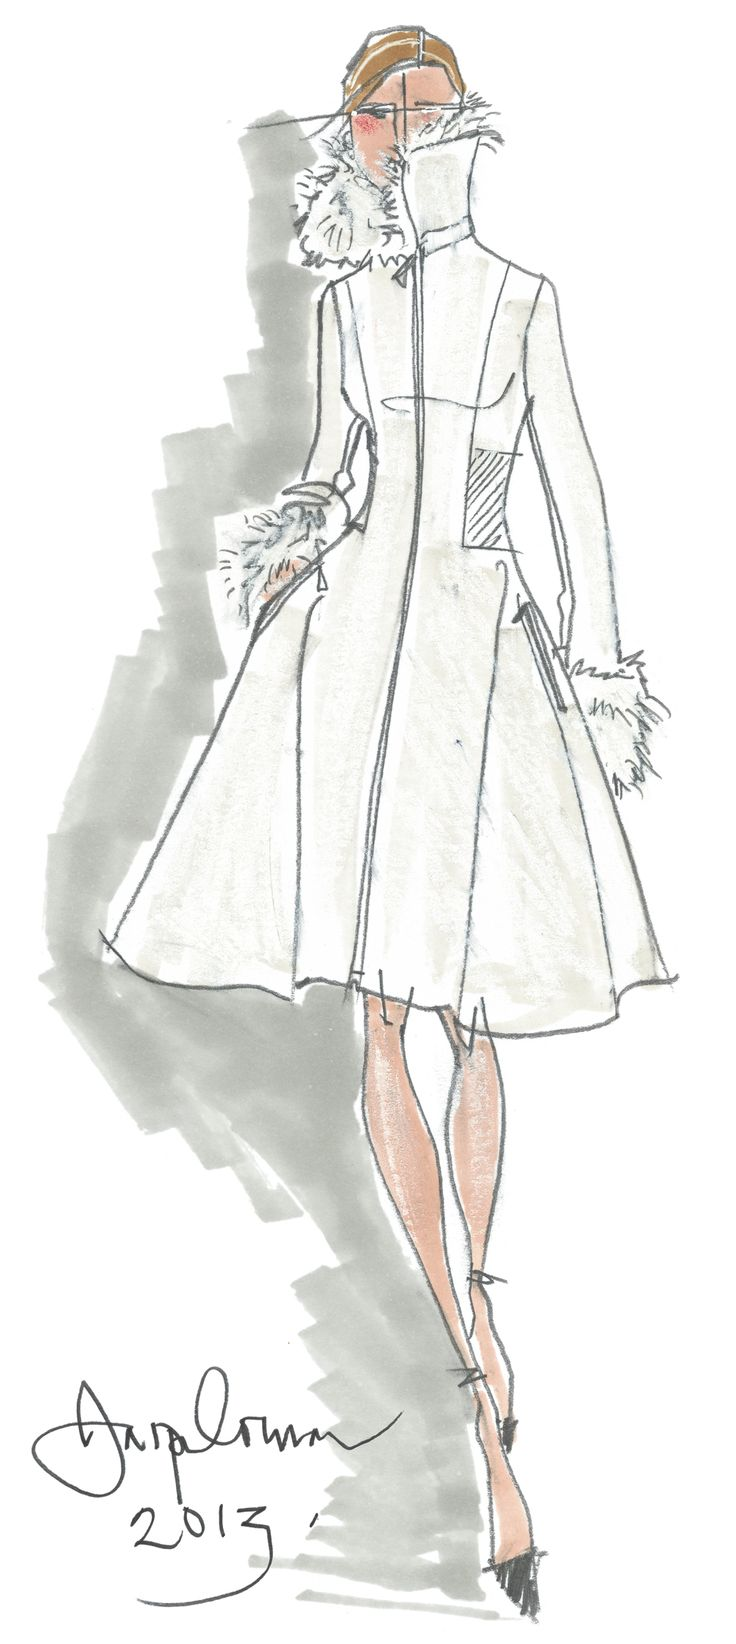 Jasper conran designer coat sketch in sketches for Haute design